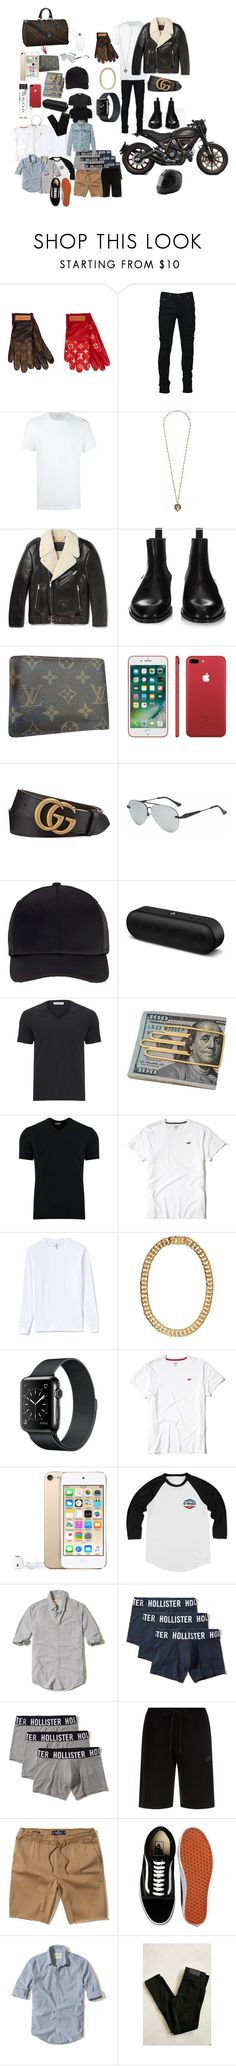 """Kylie, indo de NY para Miami."" by vejacomotenpovoa ❤ liked on Polyvore featuring Louis Vuitton, Italia Independent, Marcelo Burlon, Neil Barrett, Gucci, Marc Jacobs, Givenchy, Miss Selfridge, Beats by Dr. Dre and Versace"